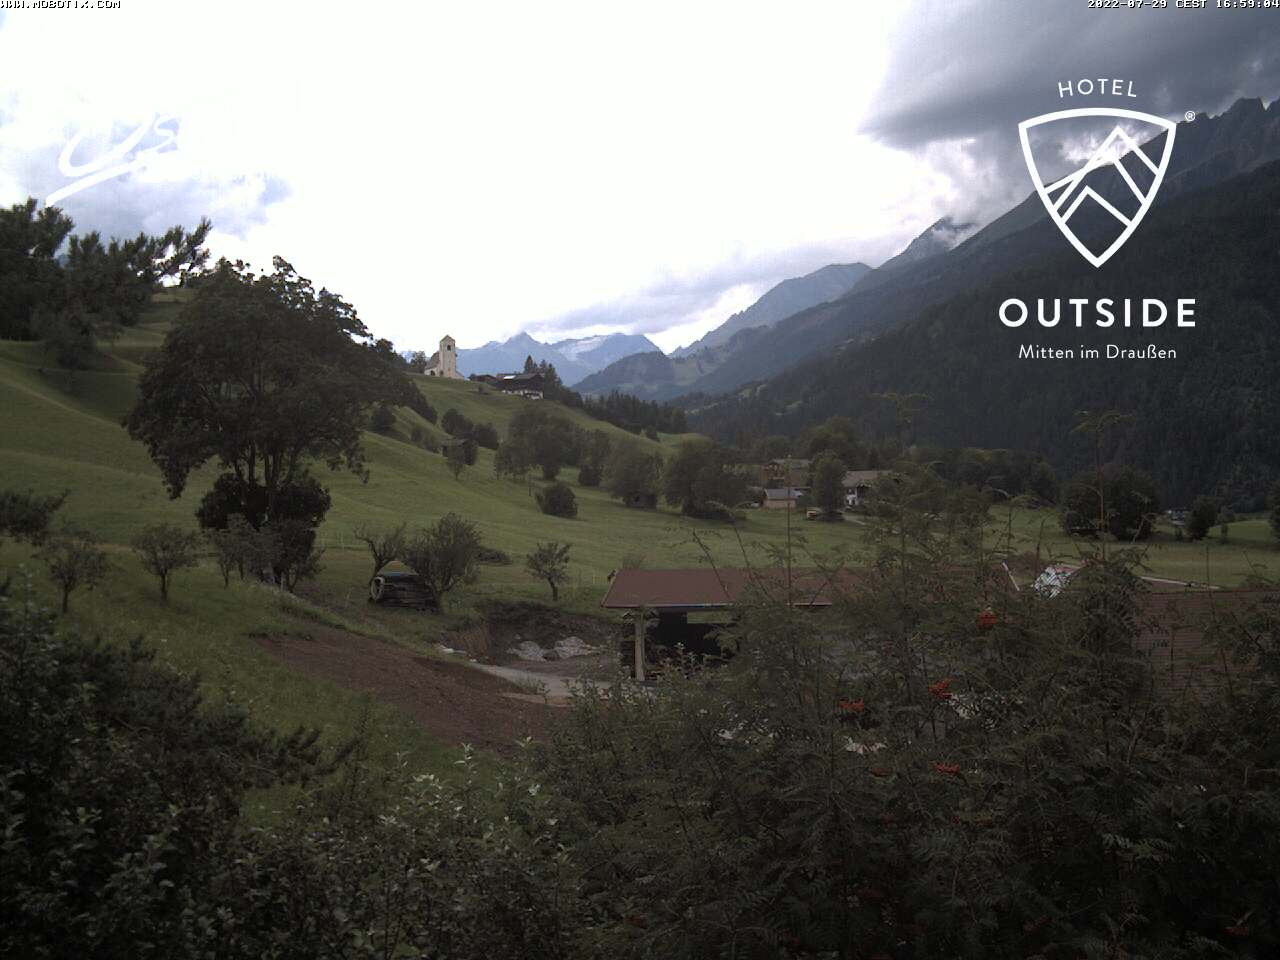 Wetter und Livebild Matrei in Osttirol (Hotel Outside), Livecam und Webcam Matrei in Osttirol (Hotel Outside) - 975 Meter Seehöhe